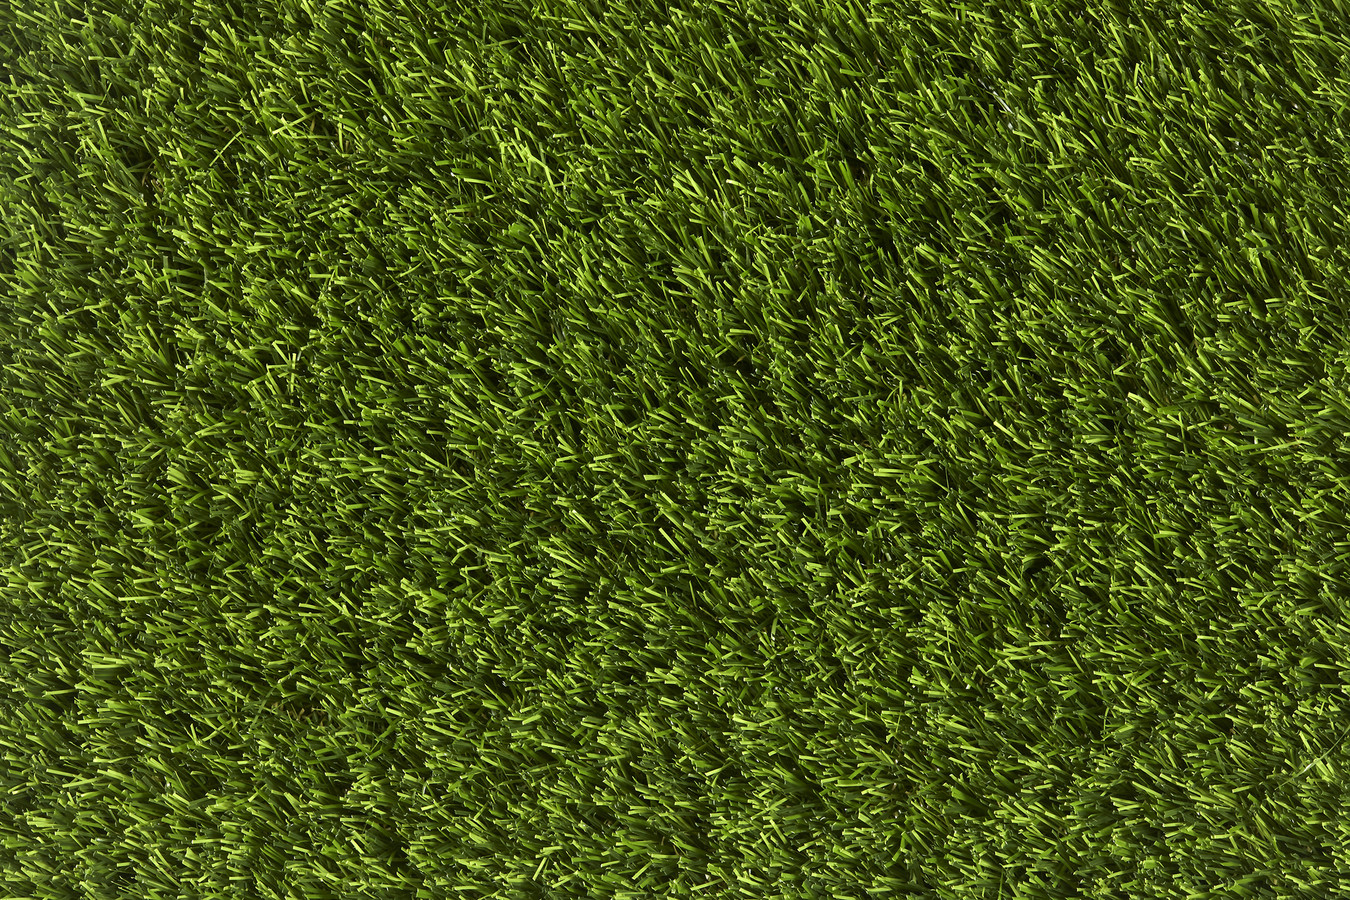 carpet-fit-wales-south-valleys-aberdare-aberaman-quality-flooring-great-customer-service-artificial-grass-carpet-fit-wales-south-valleys-aberdare-aberaman-quality-flooring-great-customer-service-artificial-grass-competiticarpet-fit-wales-south-valleys-aberdare-aberaman-quality-flooring-great-customer-service-artificial-grass-competition-50mm-pile